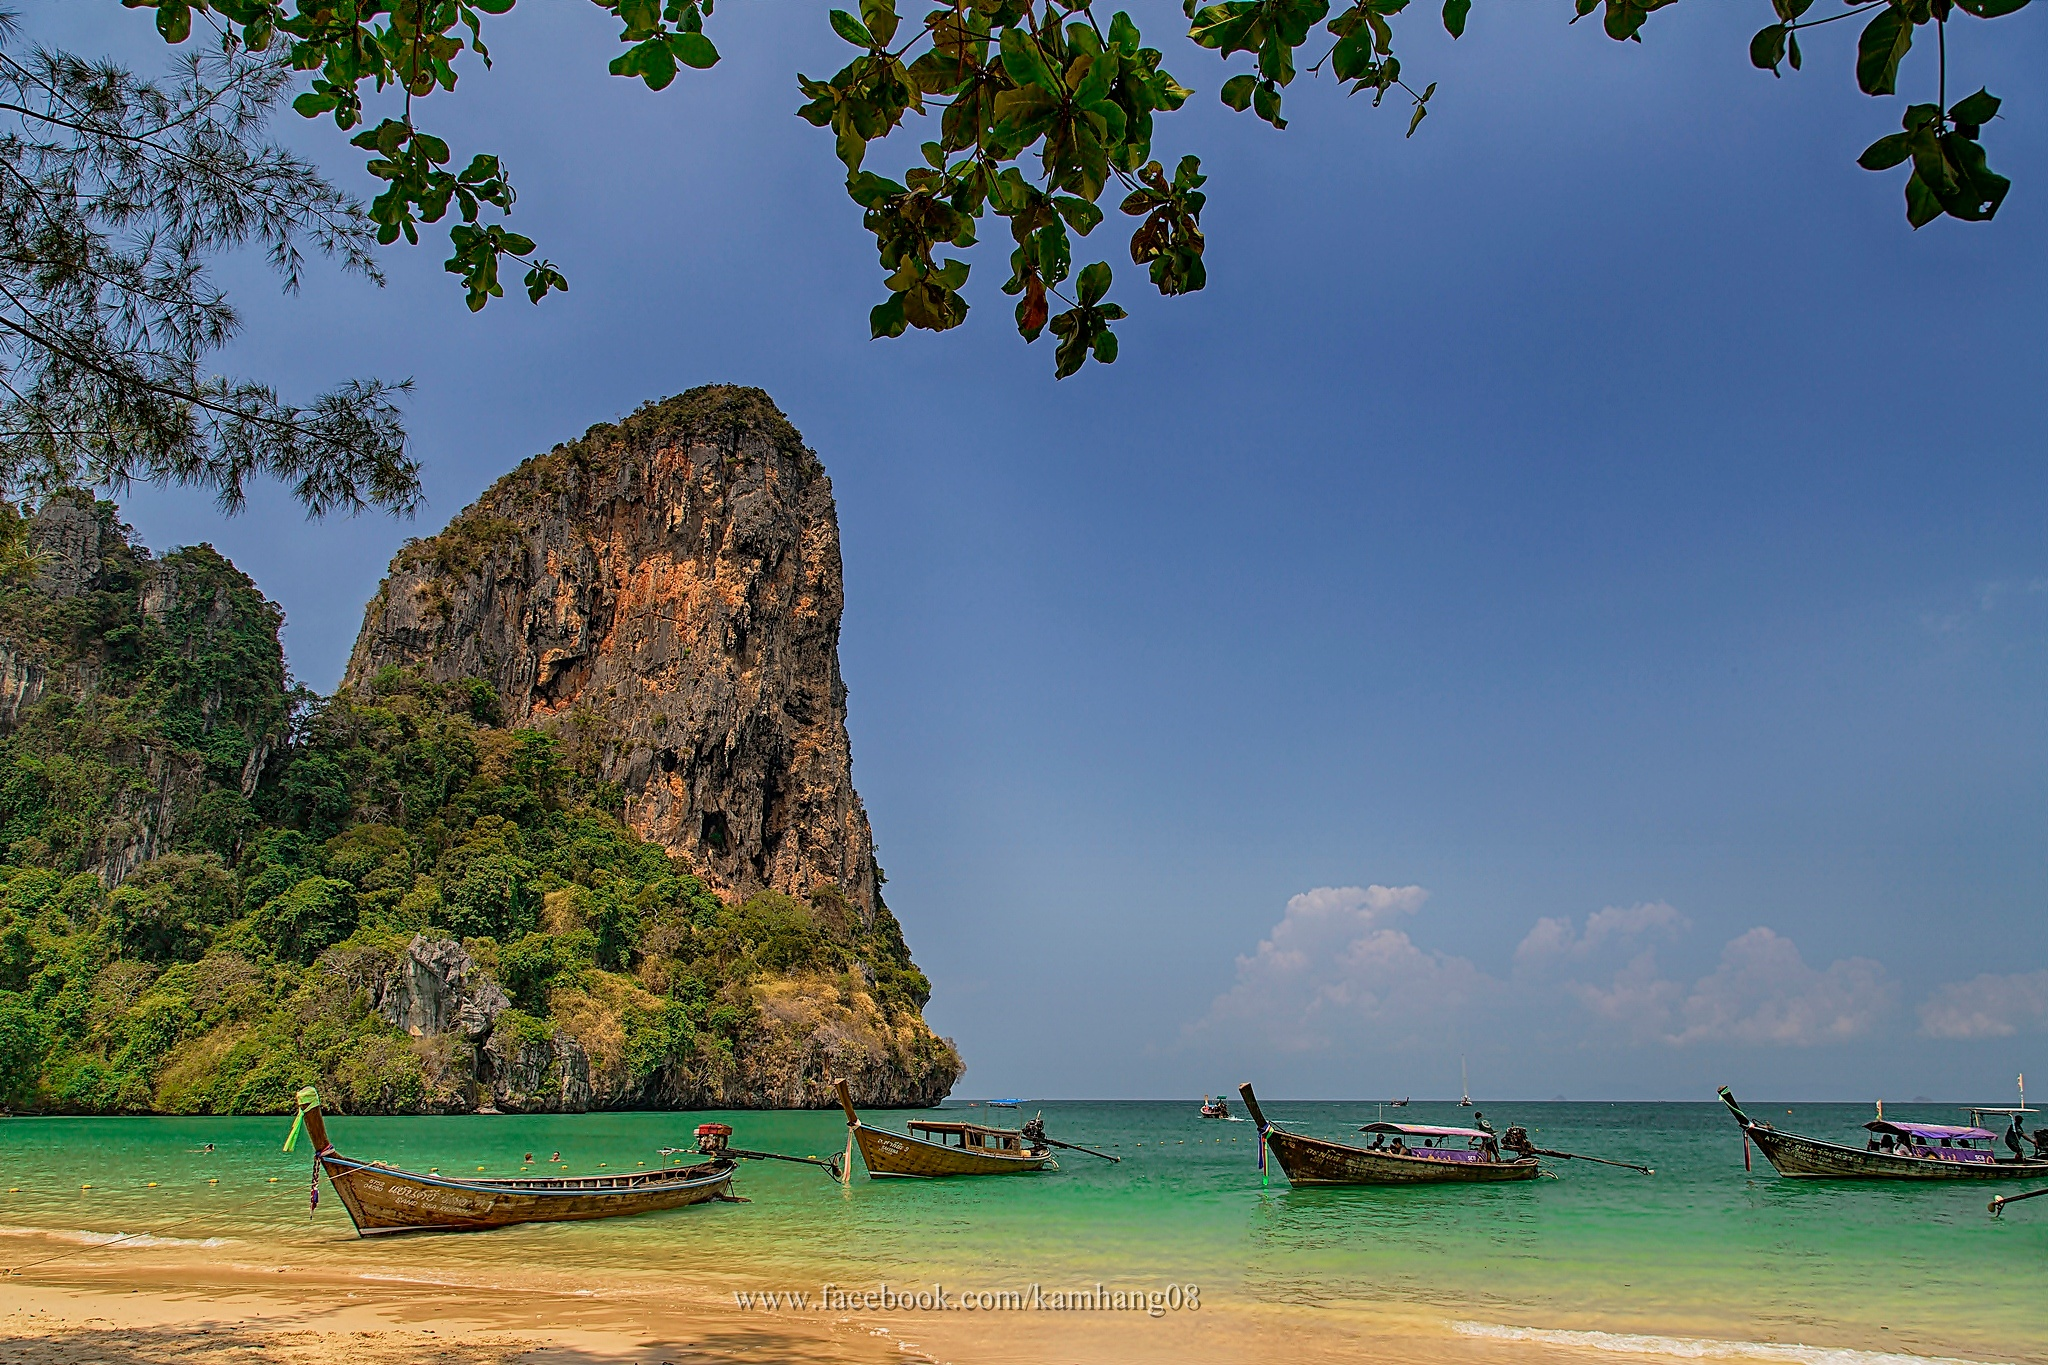 This is Krabi, Thailand. by kamhang kungquang